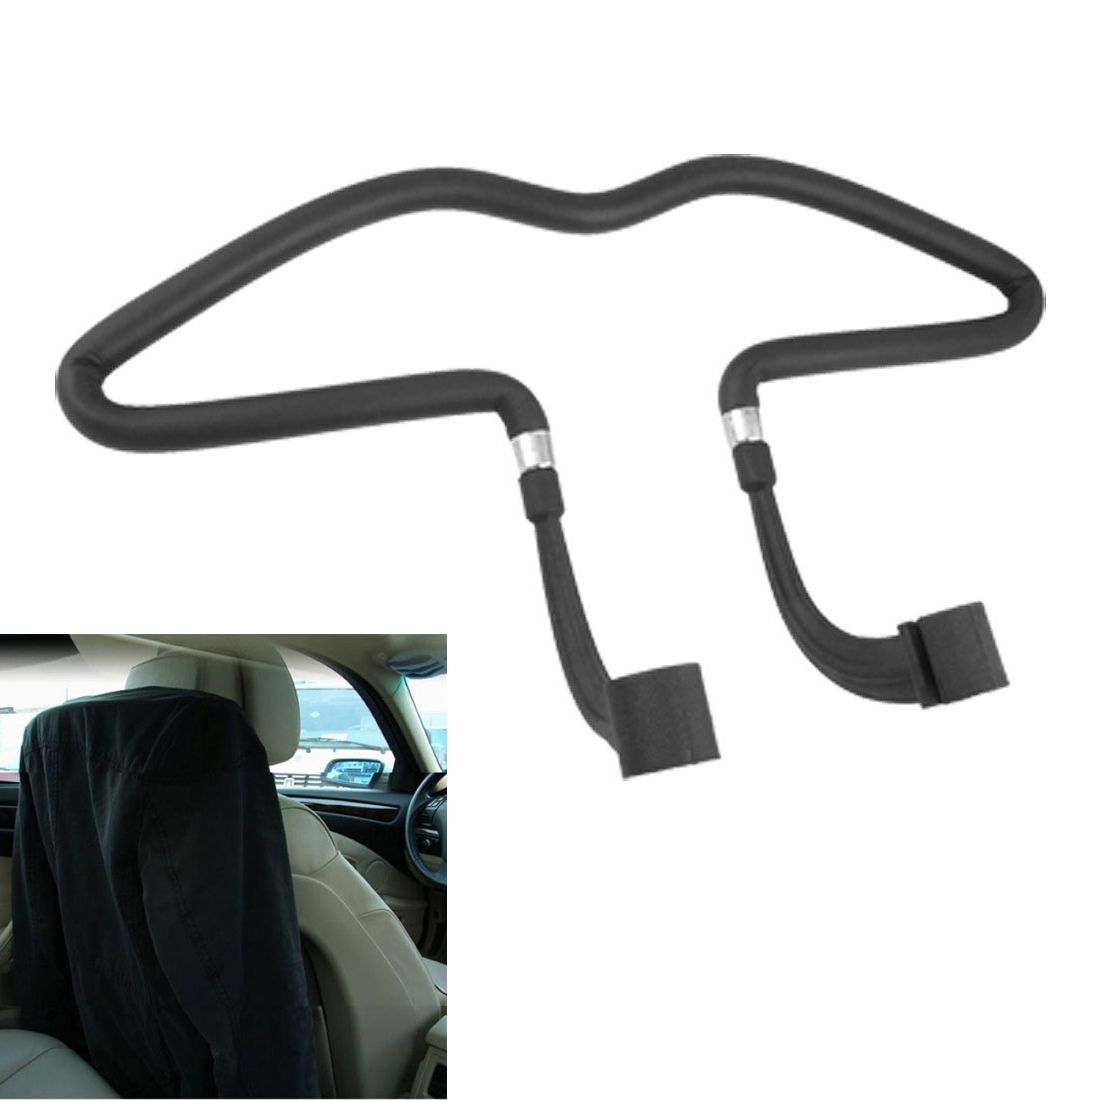 TOYL Auto Car Seat Hanger Holder Hooks Clips For Bag Purse Cloth Grocery Automobile Interior Accessories xmas new double auto car back seat headrest hanger holder hooks clips for bag purse cloth grocery automobile interior accessories